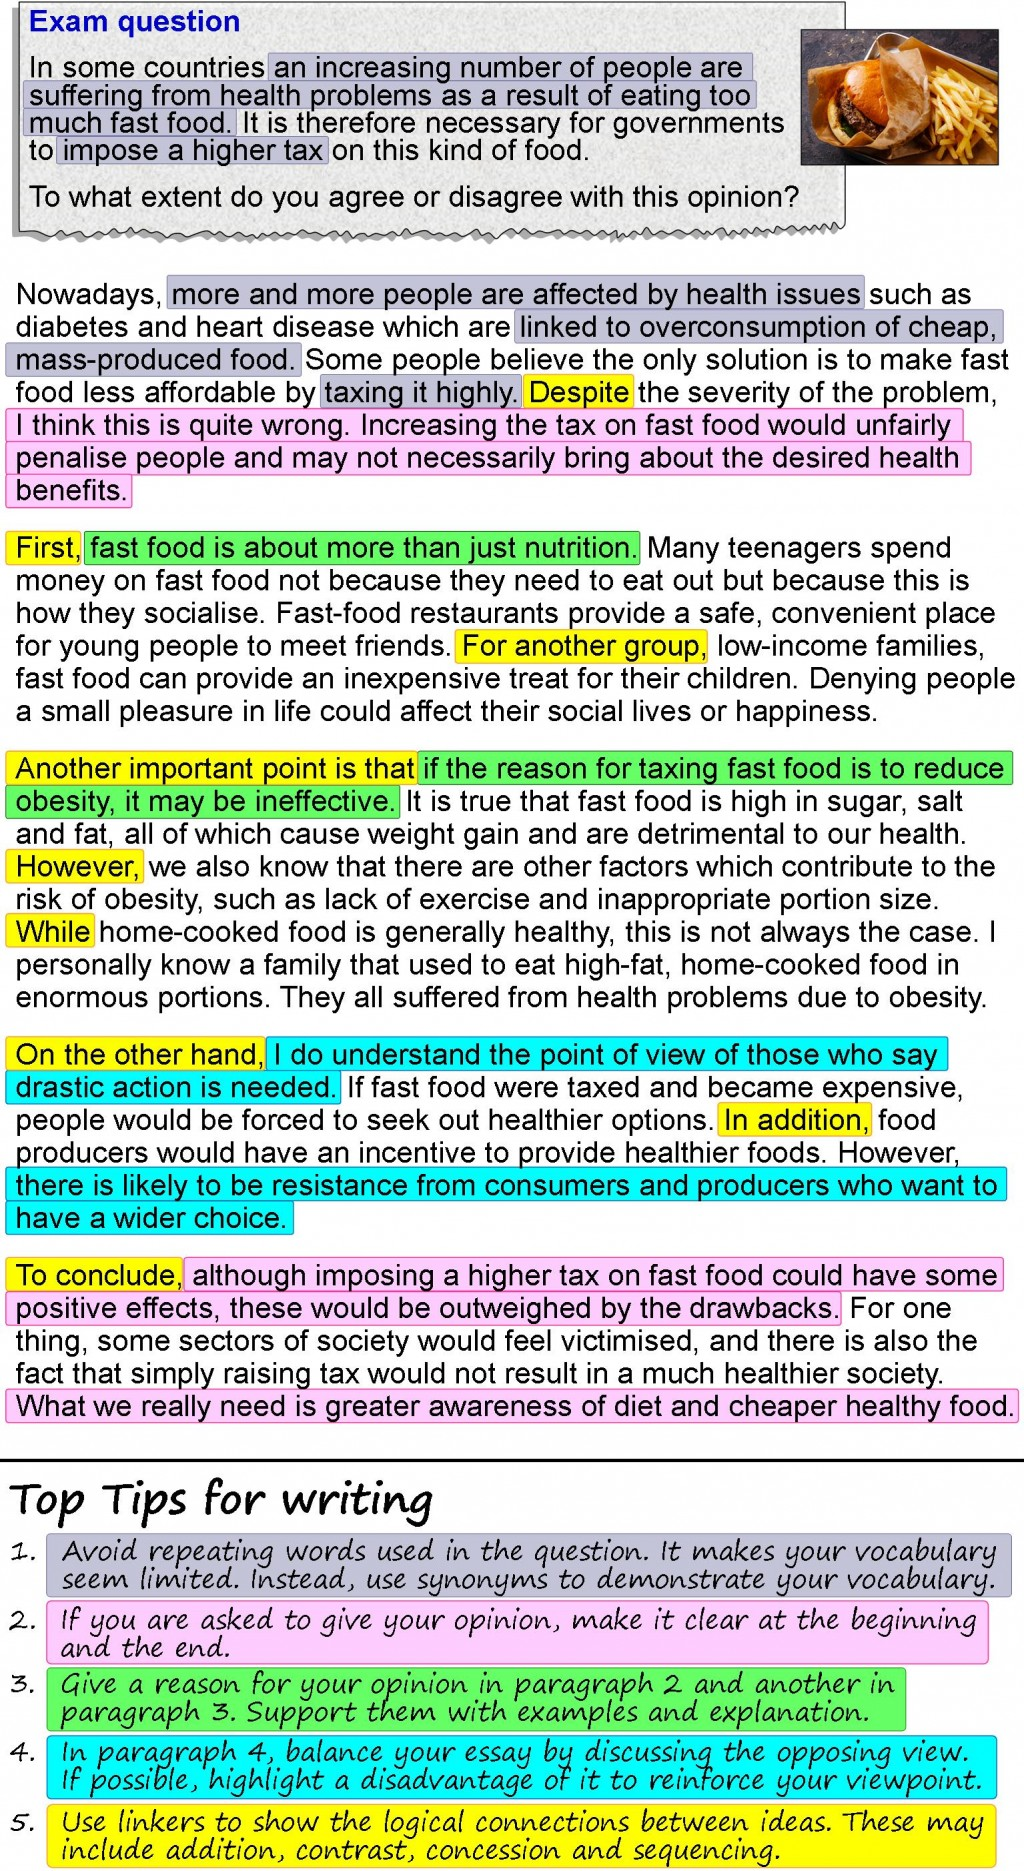 008 An Opinion Essay About Fast Food 4 Example Healthy Impressive Eating Topics Spm Habits Pdf Large